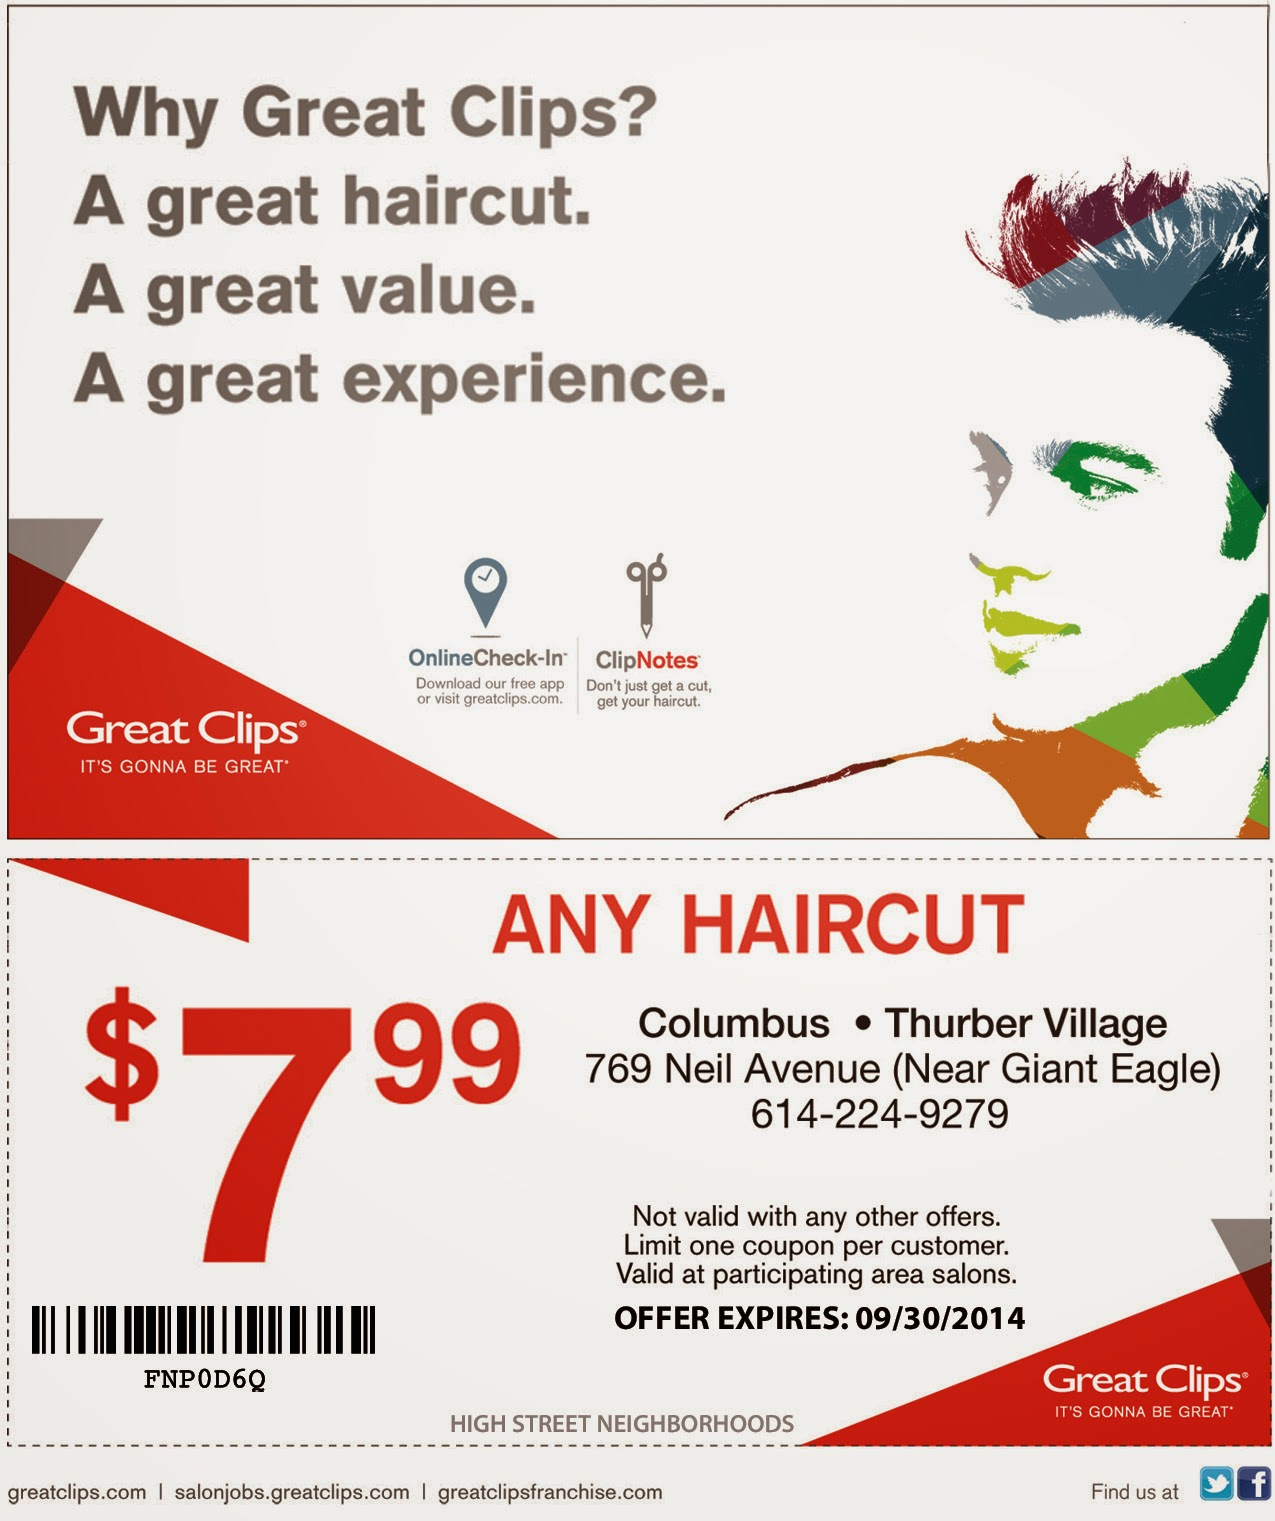 great clips coupons july 2018 printable / ocean city md hotels best